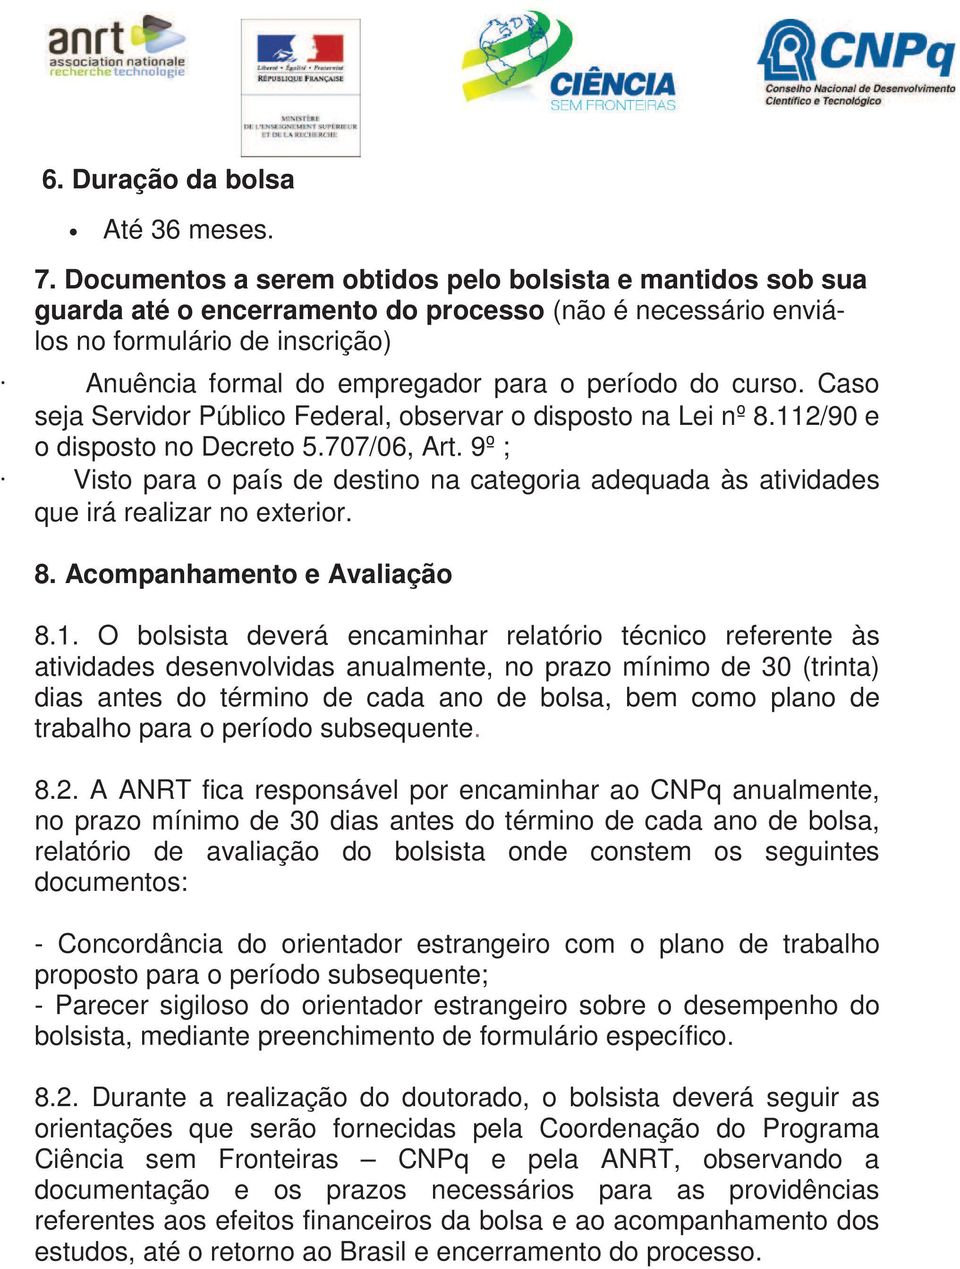 do curso. Caso seja Servidor Público Federal, observar o disposto na Lei nº 8.112/90 e o disposto no Decreto 5.707/06, Art.